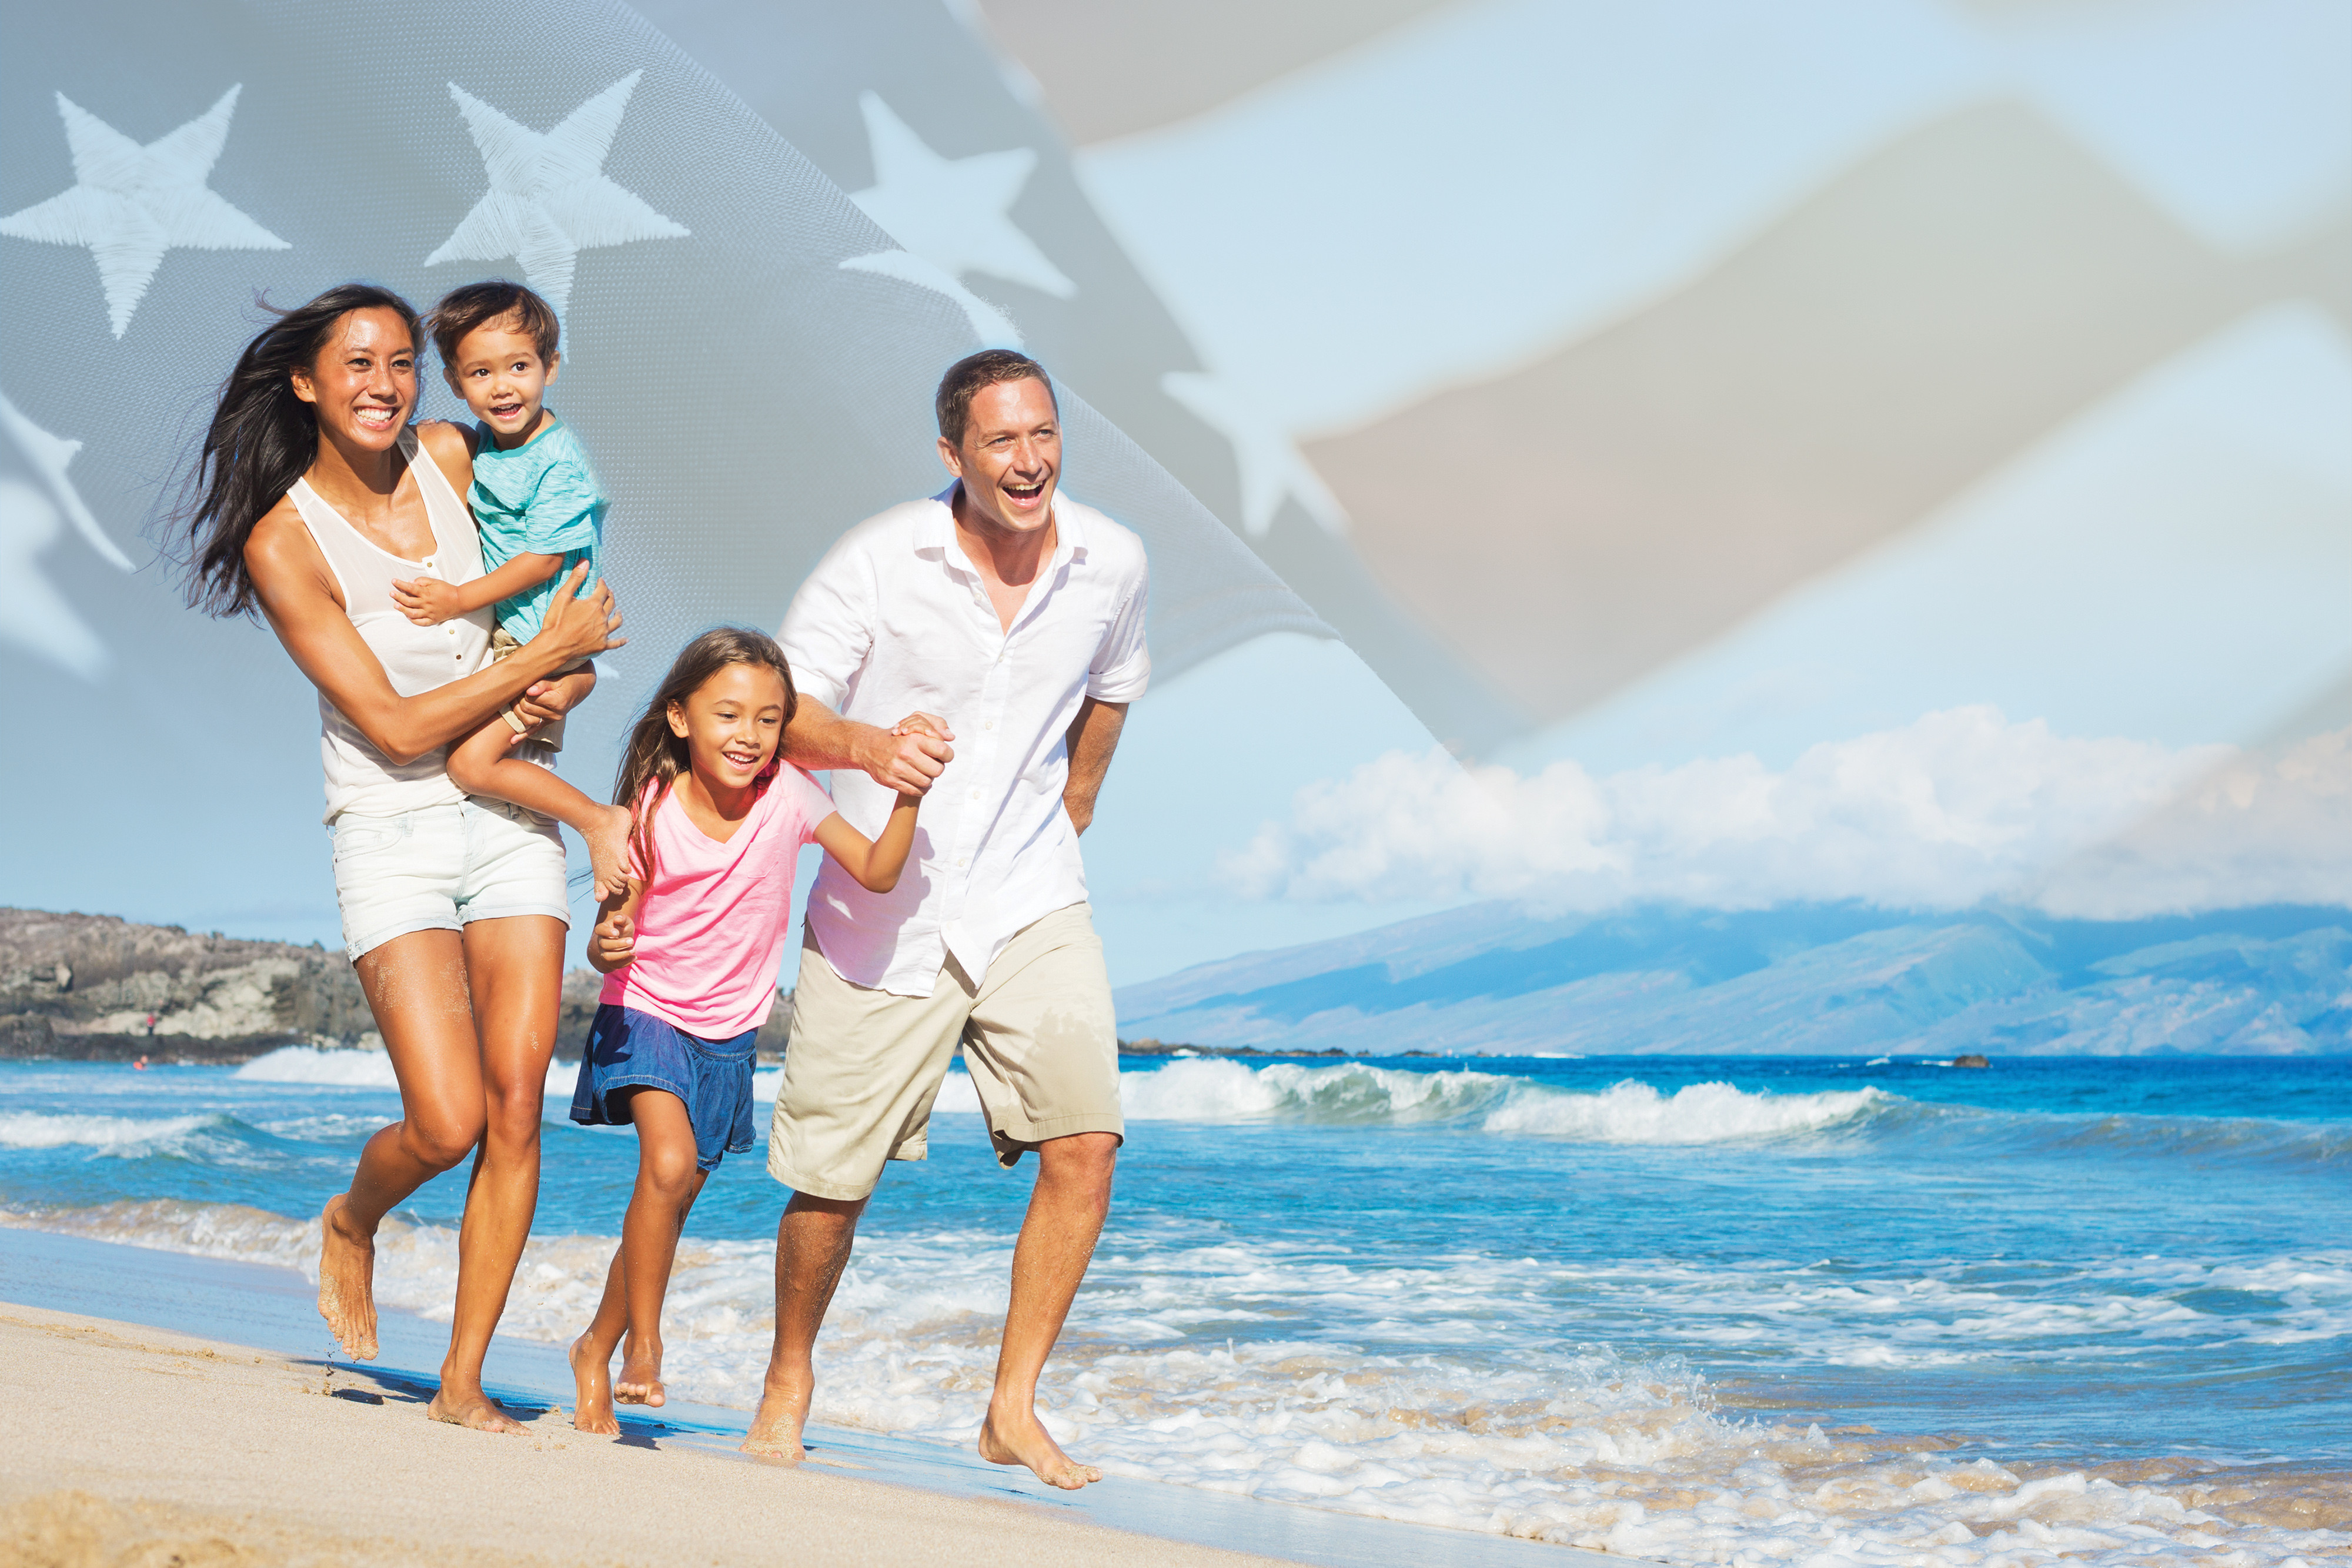 Celebrate Memorial Day Holiday 2019 With Memorial Day Vacations at Westgate Resorts! This Memorial Day Weekend explore the world of Westgate Resorts destinations and have a great Memorial Day holiday 2019!